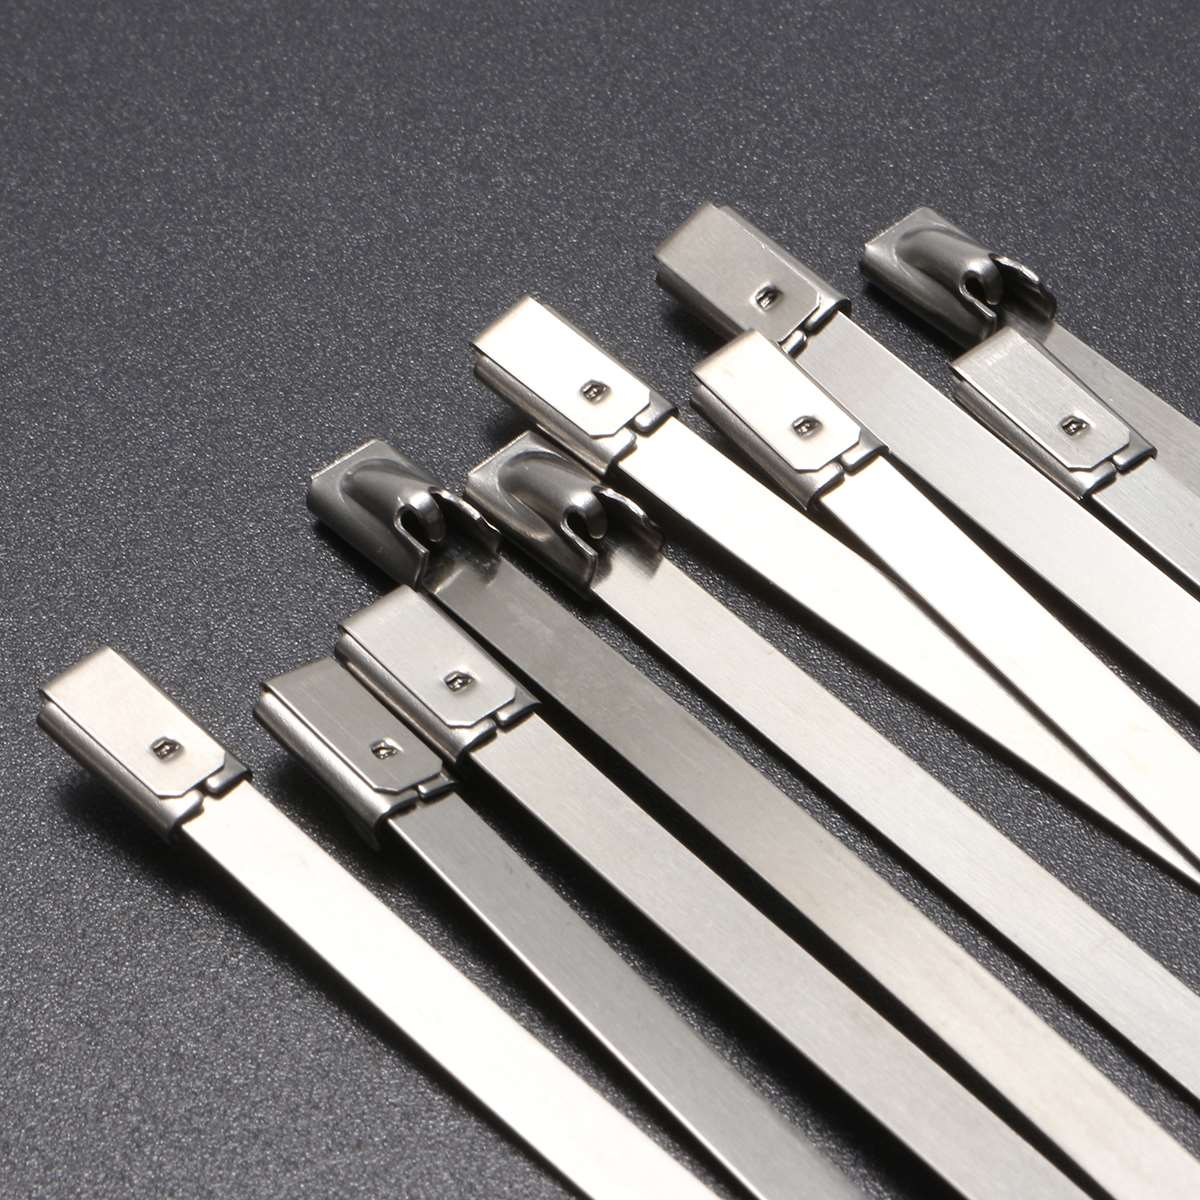 Others naked stainless steel cable ties